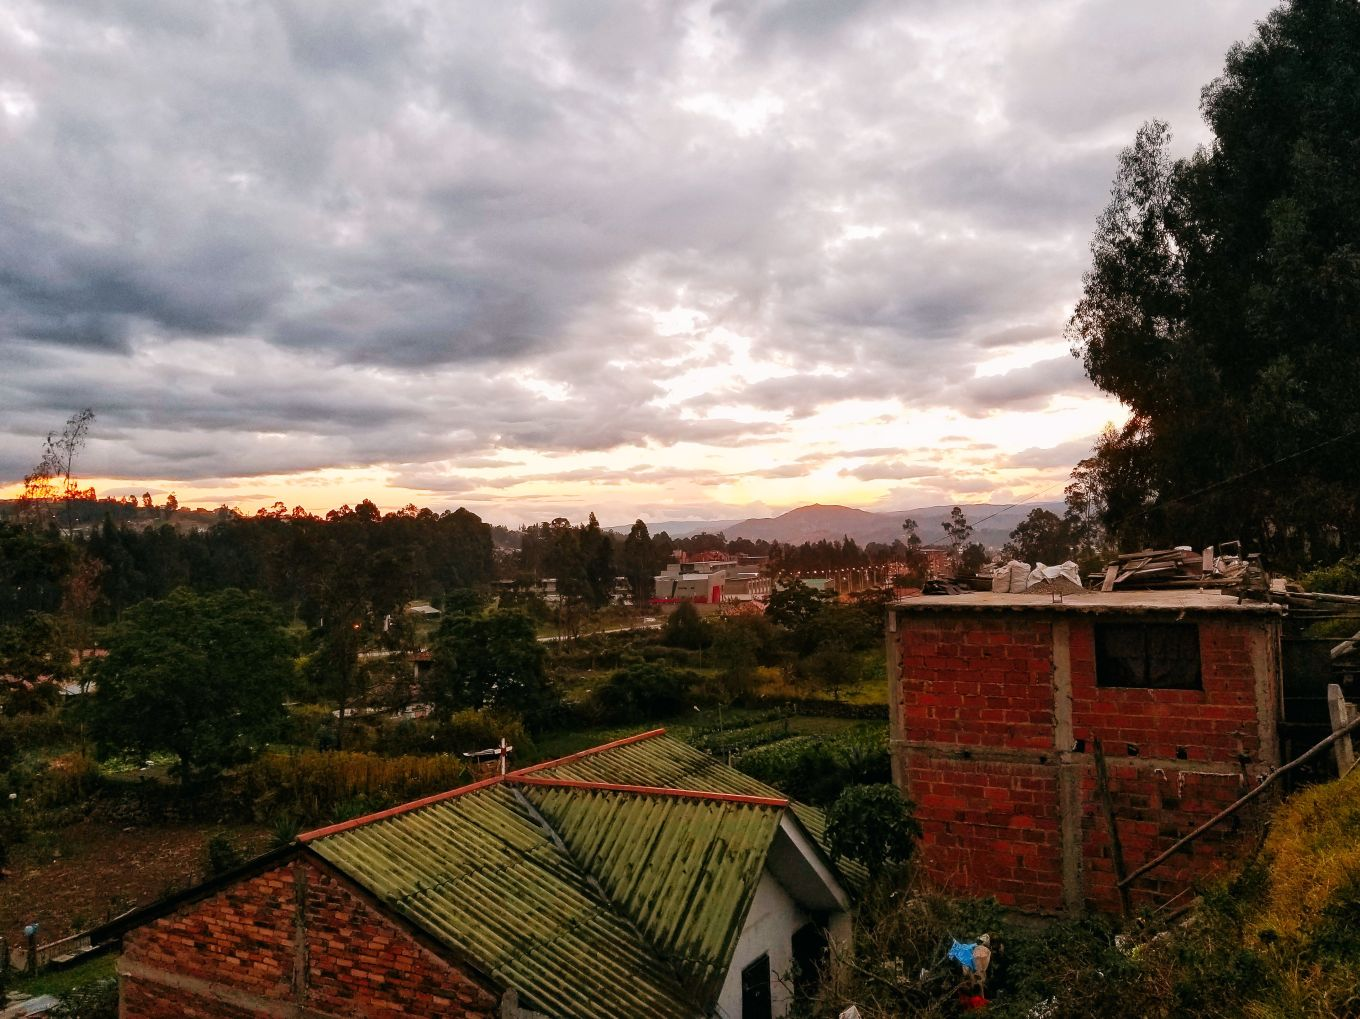 Looking out over Cuenca as the daylight dwindles